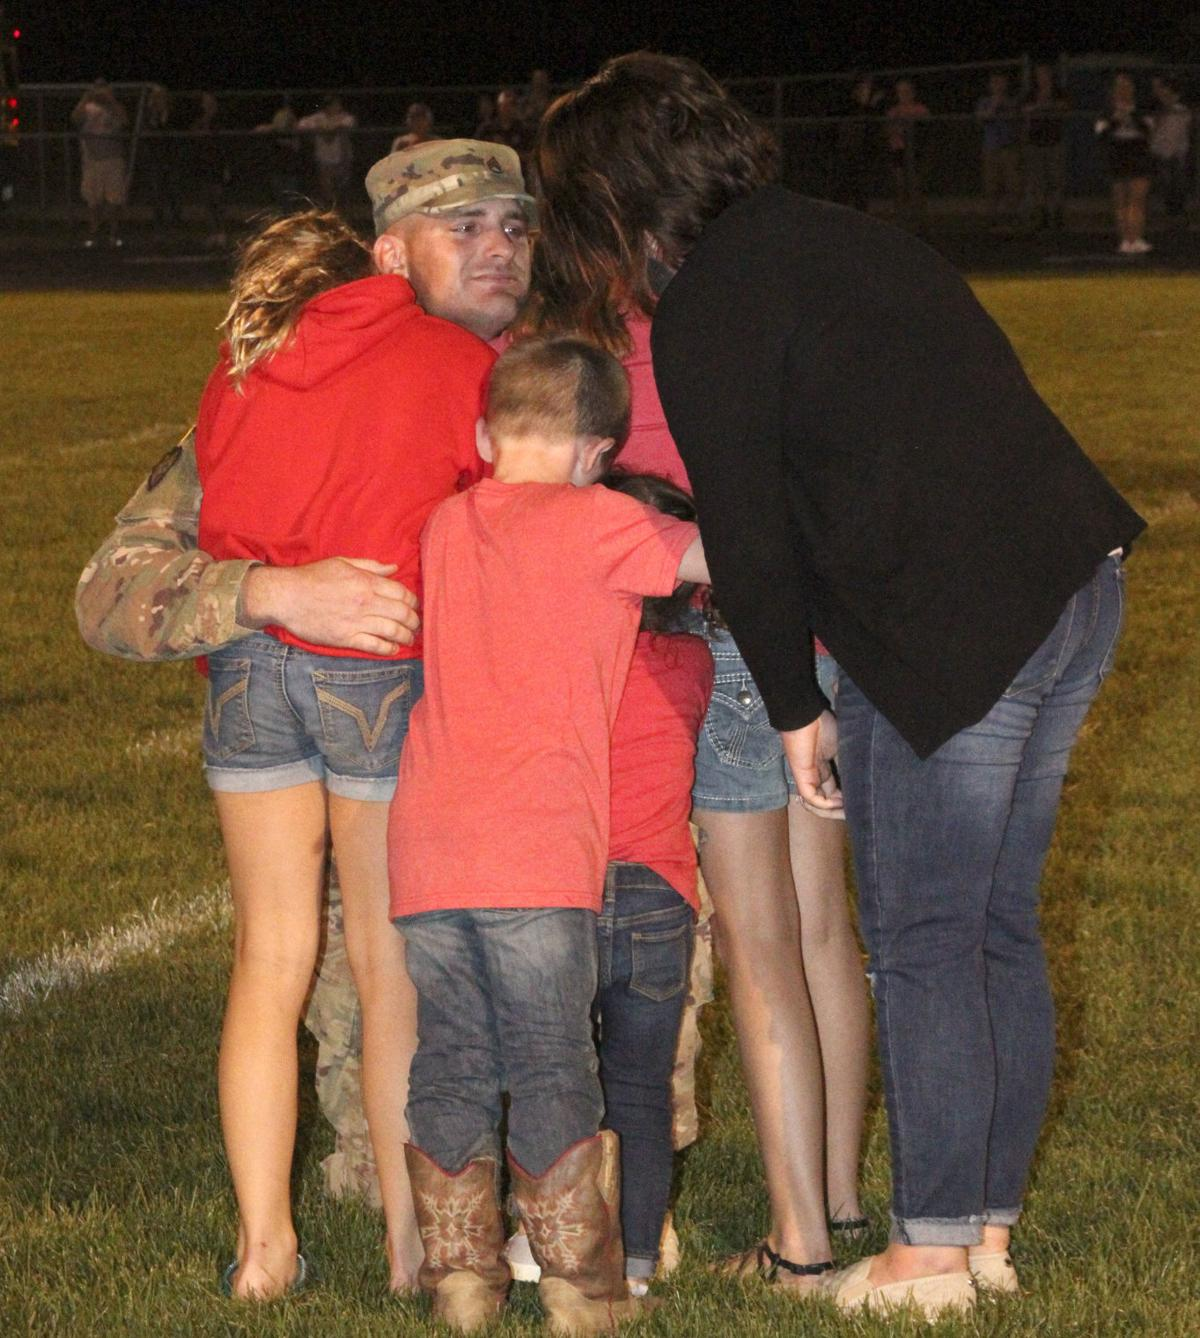 Soldiers Surprise Return Provides Touching Moment At Ed Co Game